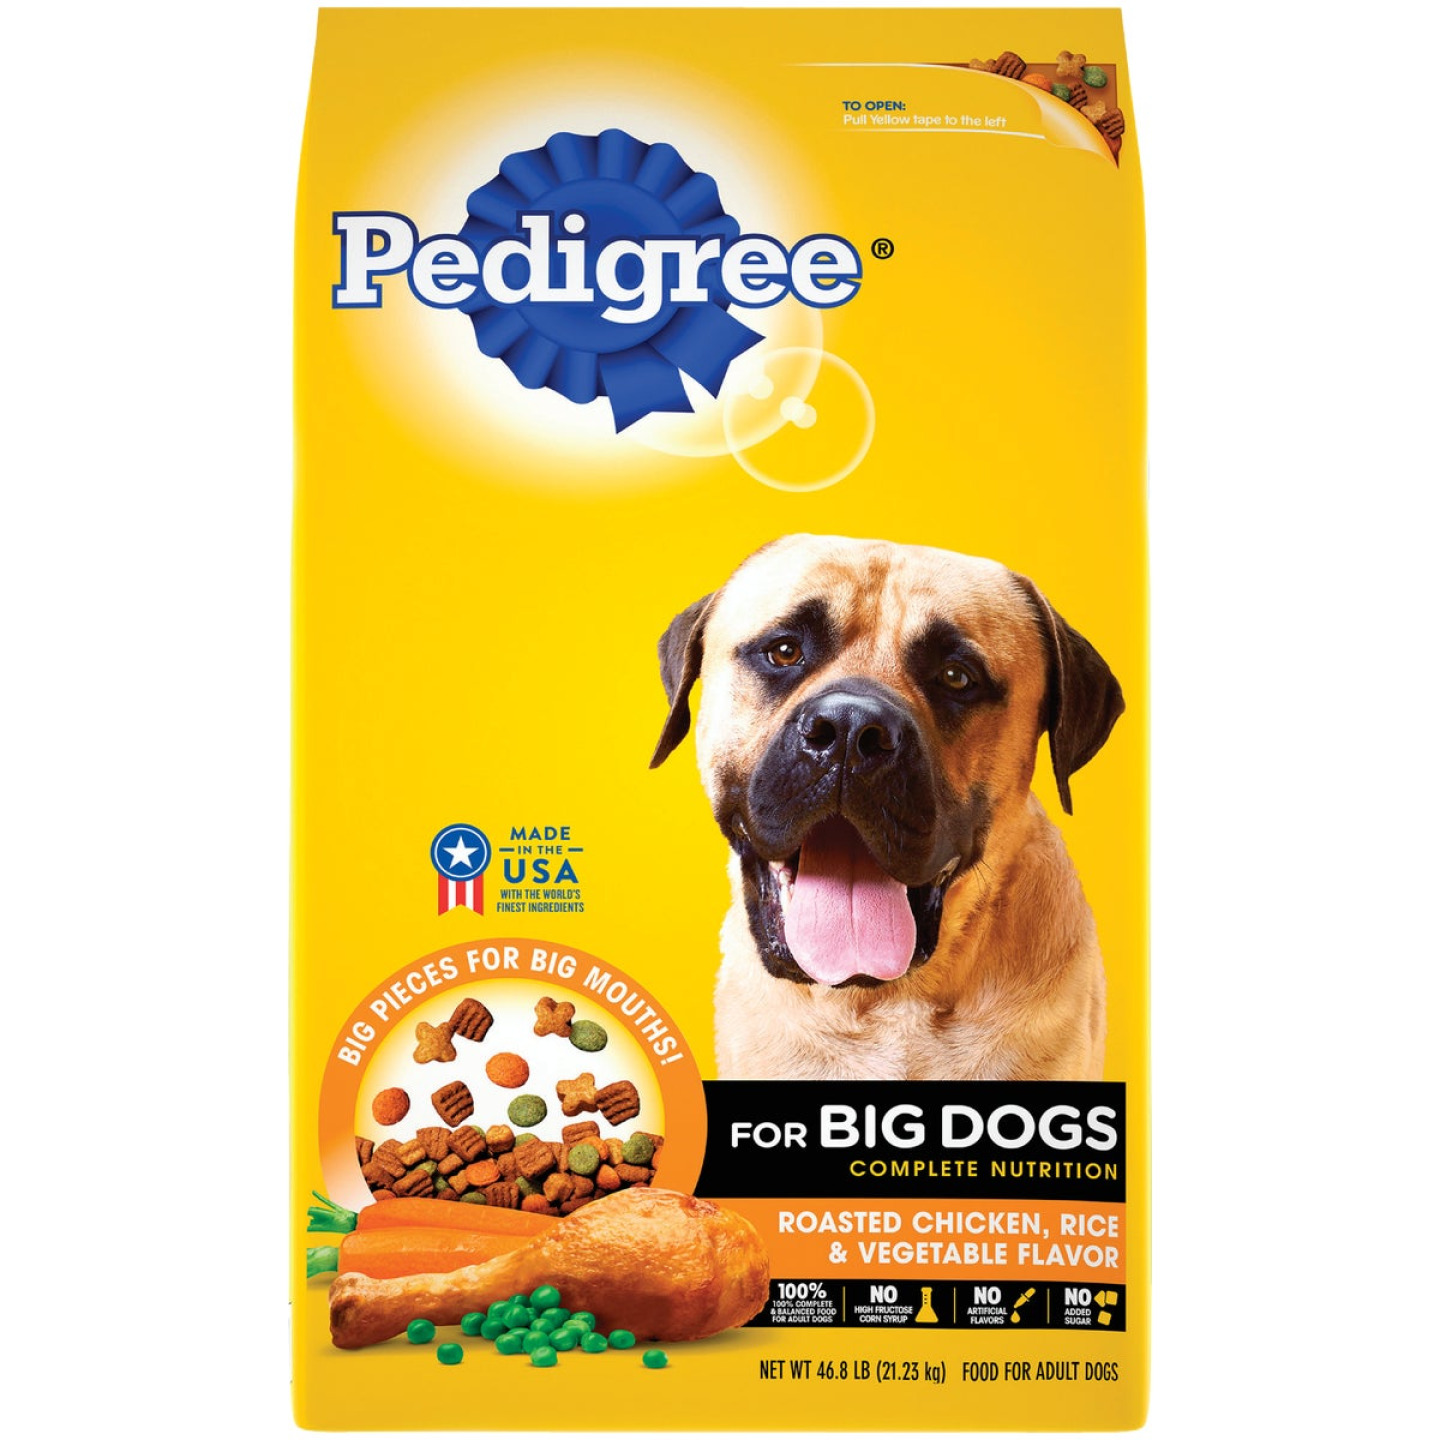 Pedigree Complete Nutrition 46.8 Lb. Roasted Chicken, Rice & Vegetable Large Breed Adult Dry Dog Food Image 1